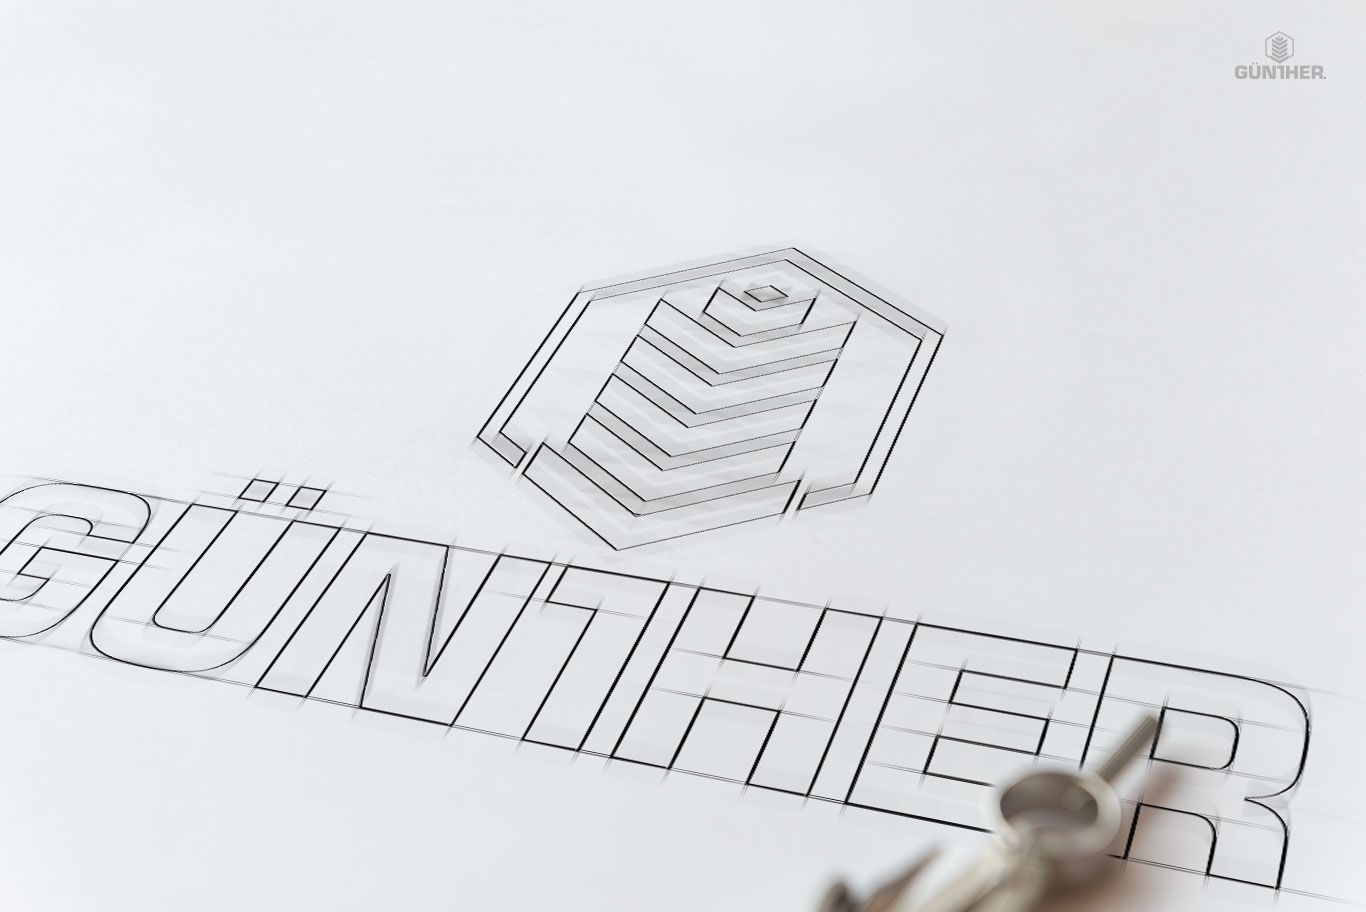 gunther logo and wordmark design